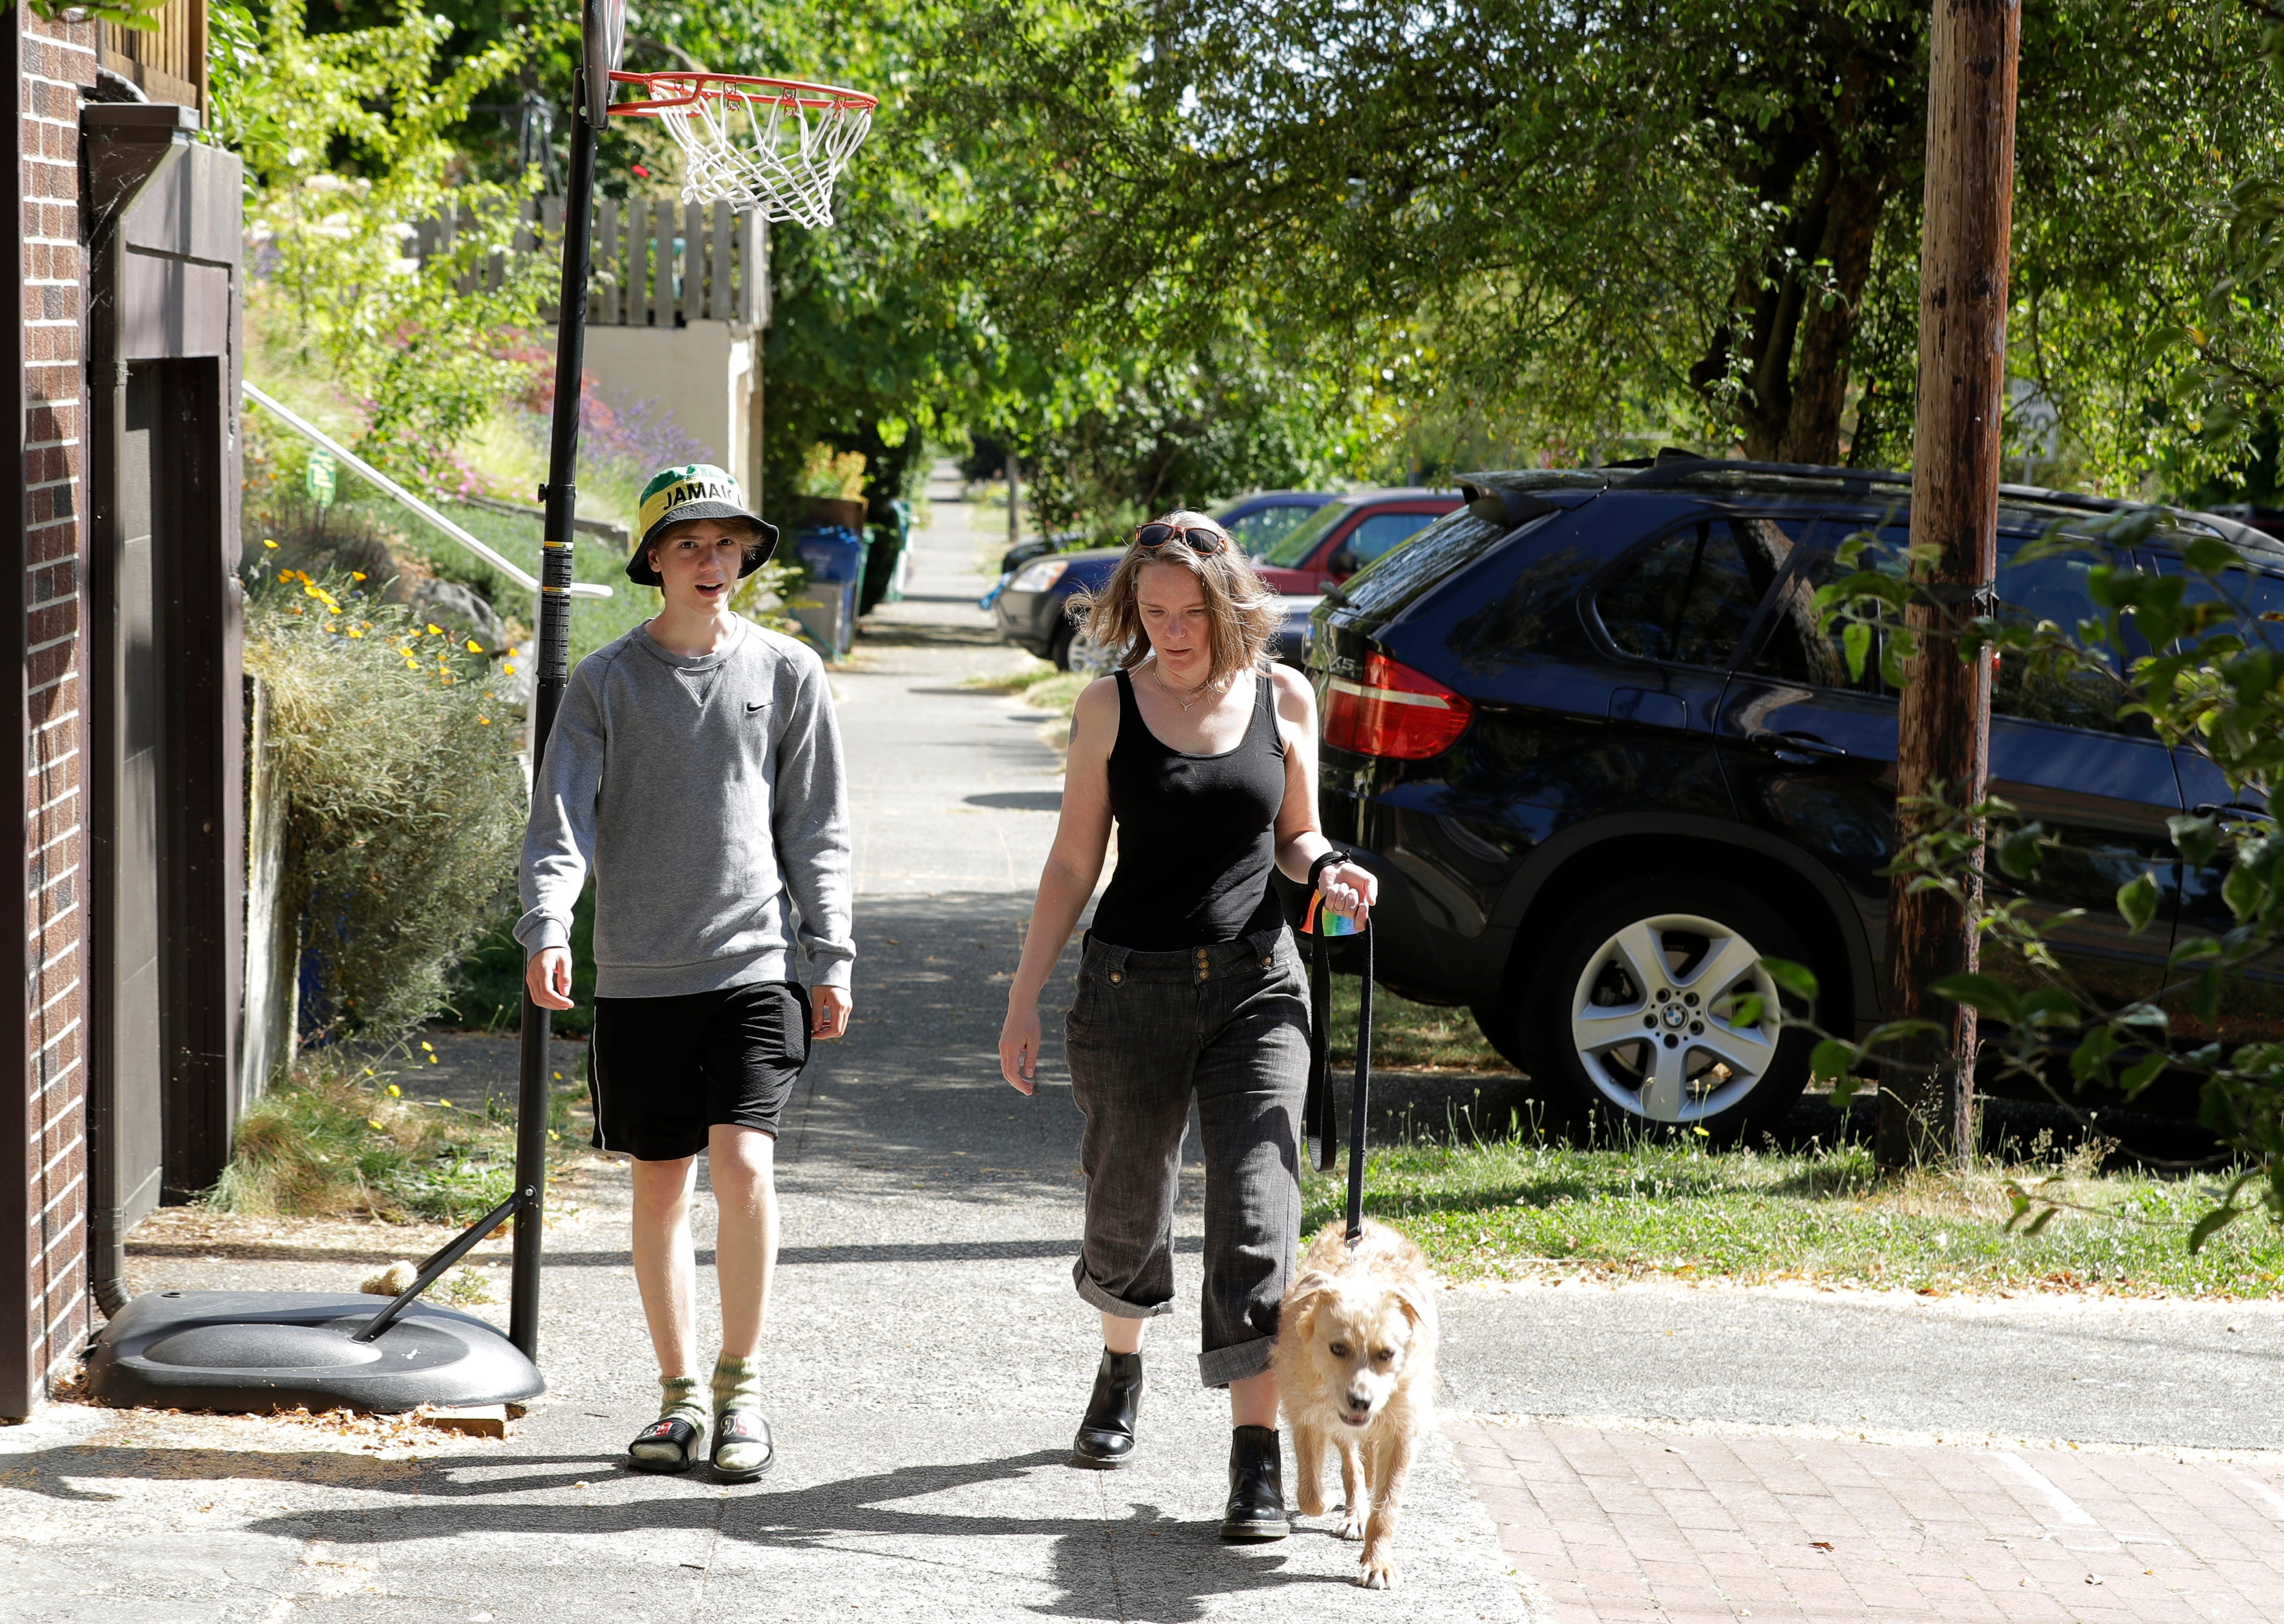 Jennifer Haller, right, the first person to receive a trial dose of a COVID-19 vaccine, walks with her son Hayden, 16, and their dog Meg, Sunday, July 19, 2020, in Seattle. As the world's biggest COVID-19 vaccine study gets underway more than four months after Haller and 44 others became the first participants in a phase-one coronavirus vaccine study that has produced encouraging results, Haller is encouraging other people to sign up for future trials.